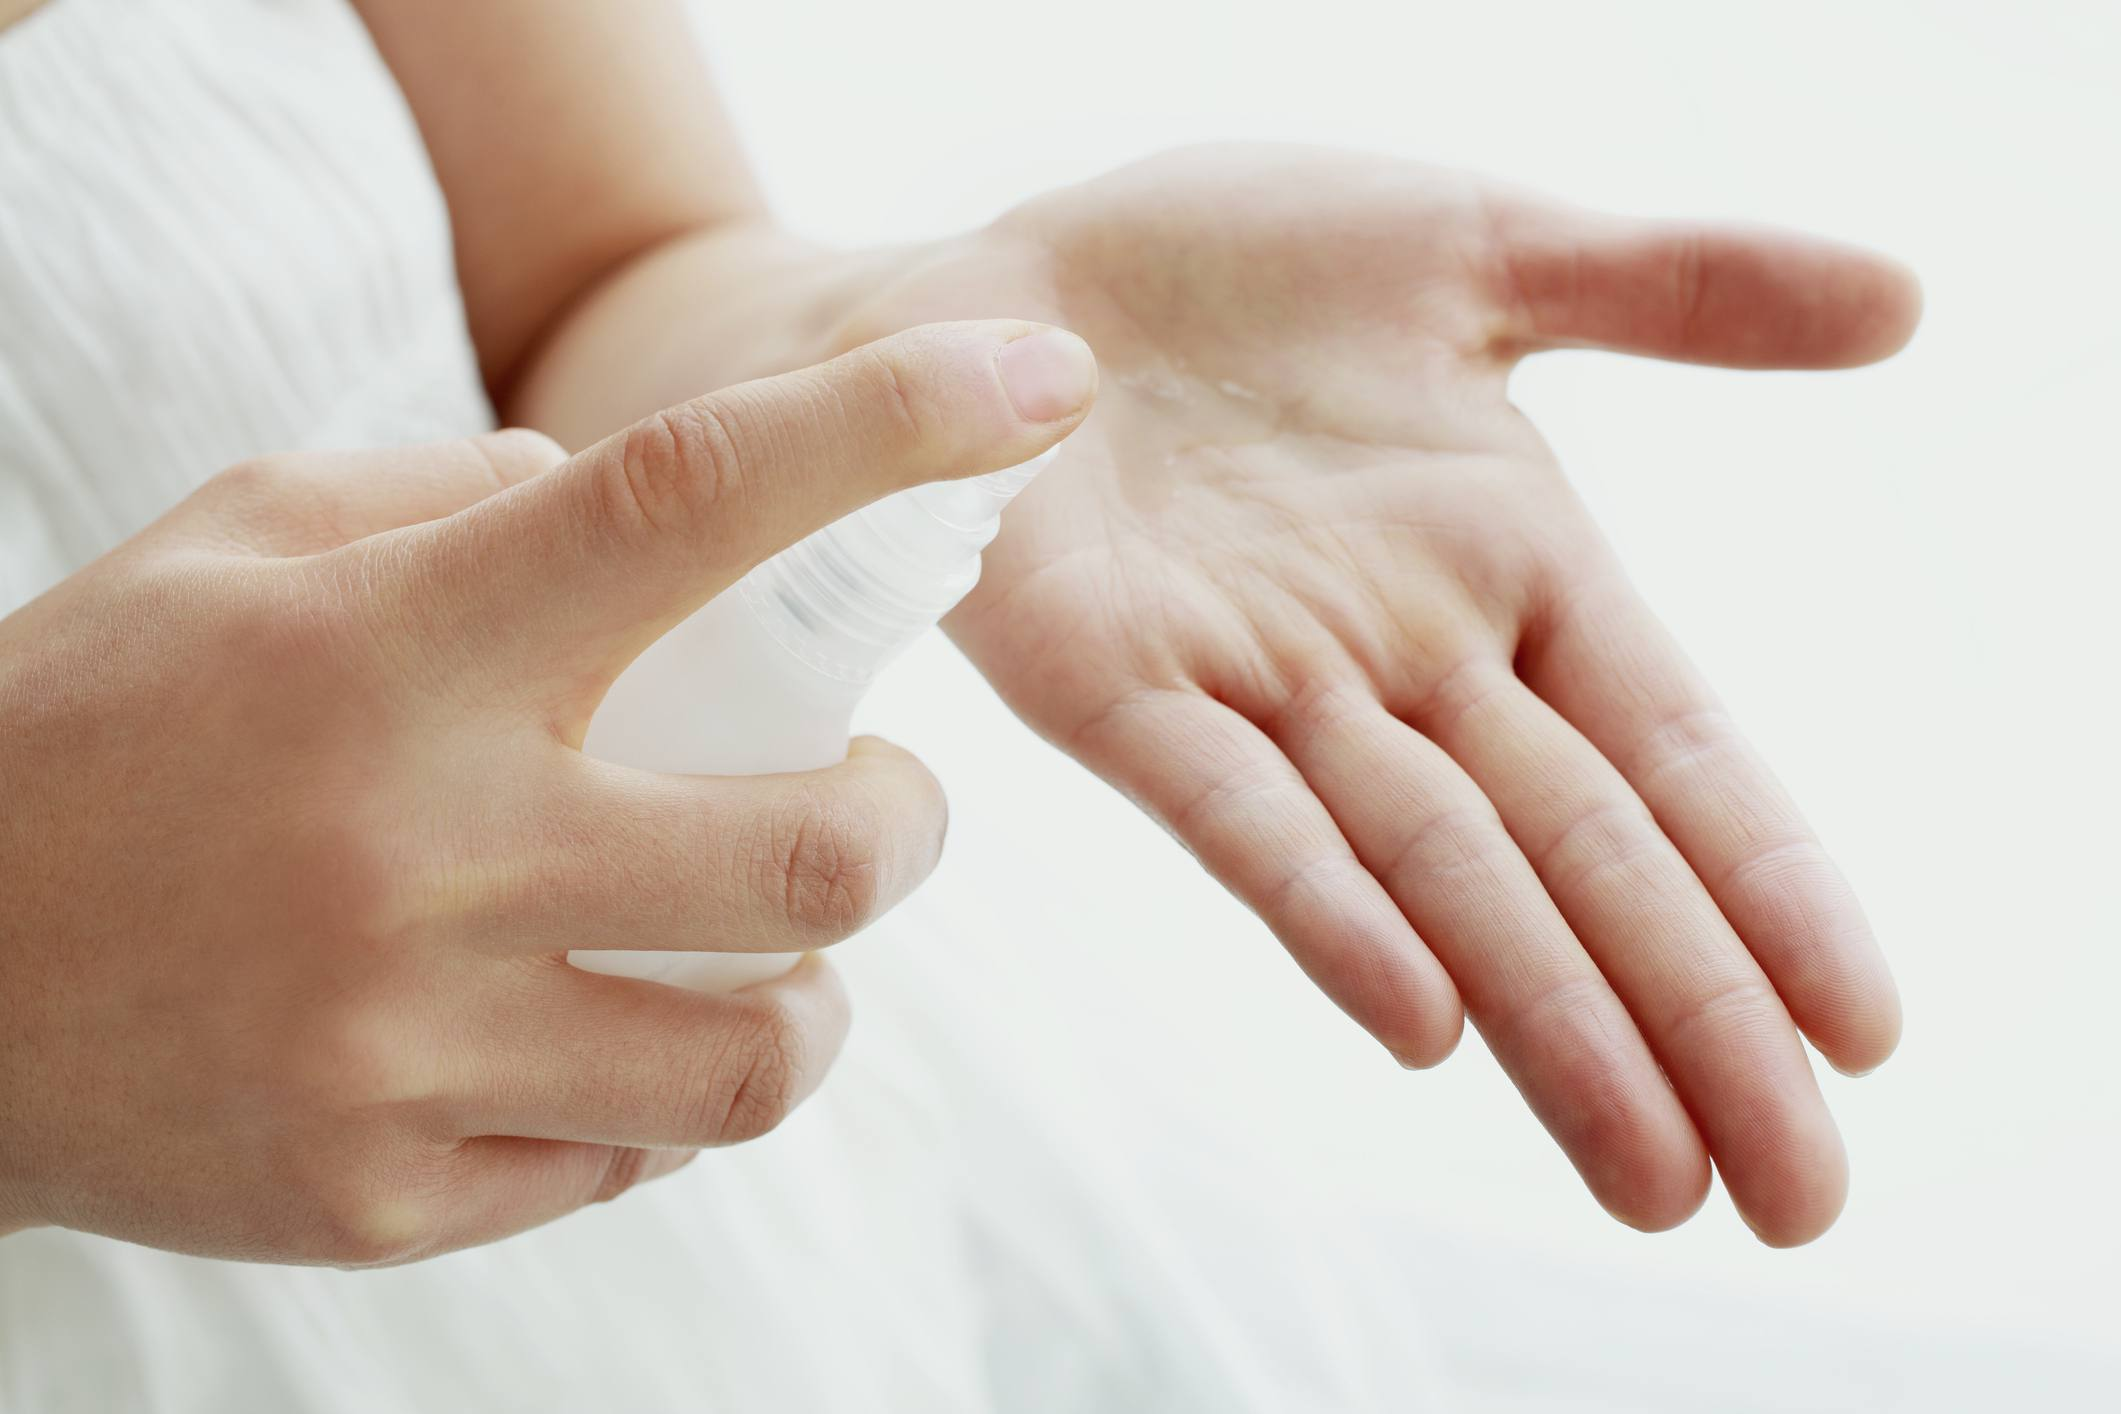 Woman pouring medicated cream into hand, close-up